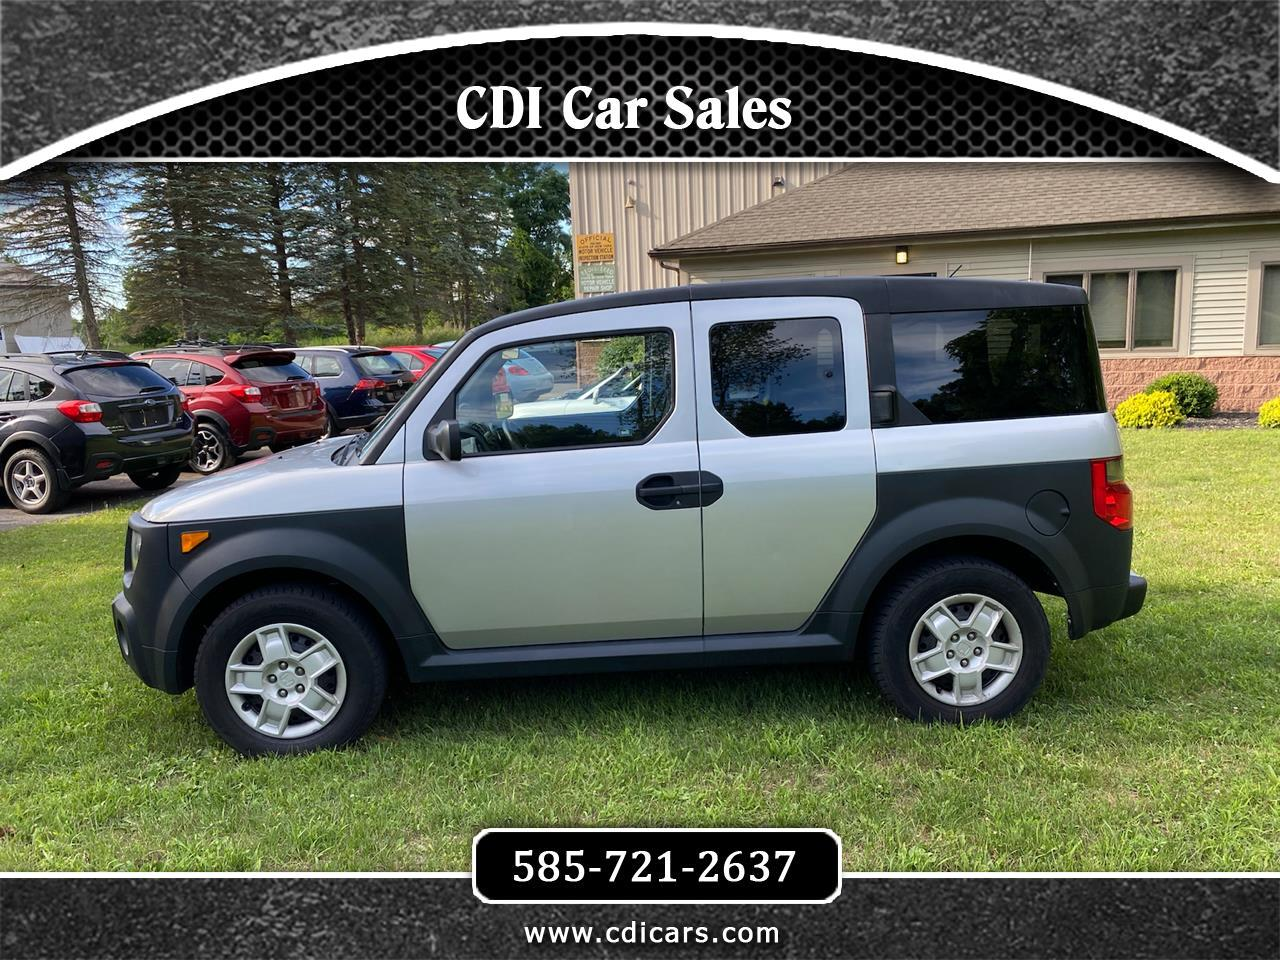 Used 2008 Honda Element Lx 4wd At For Sale In Victor Ny 14564 Cdi Car Sales